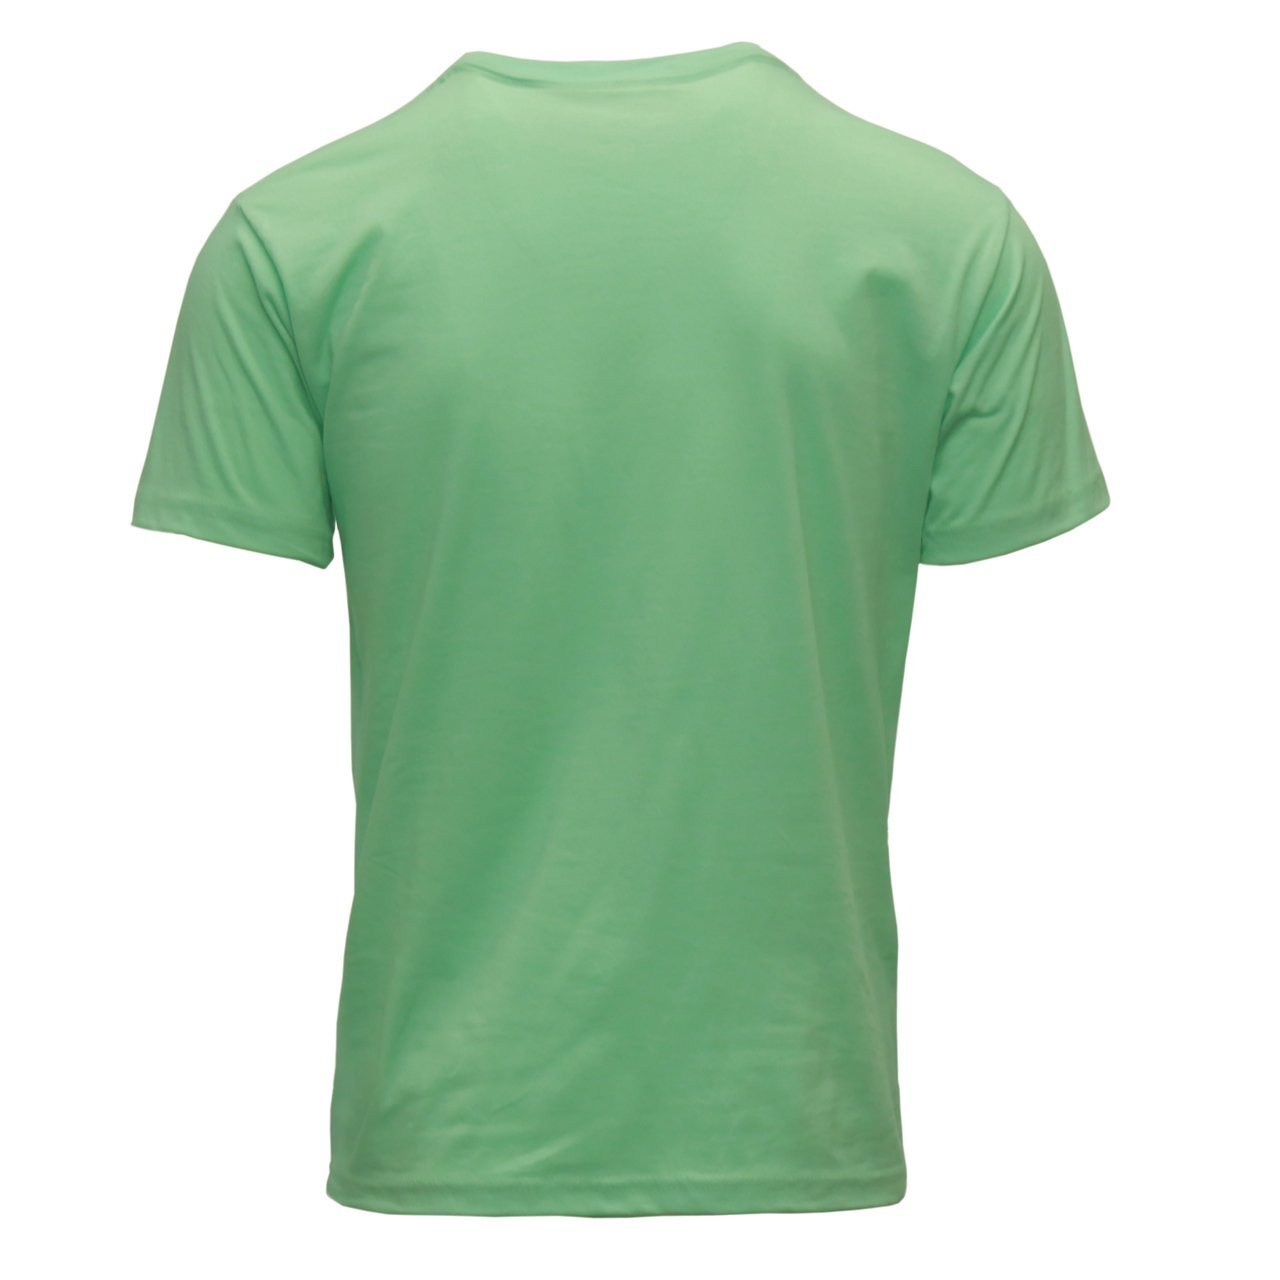 PC100MT Eco REPREVE® Recycled Polyester/Cotton Crew T-Shirt - Mint